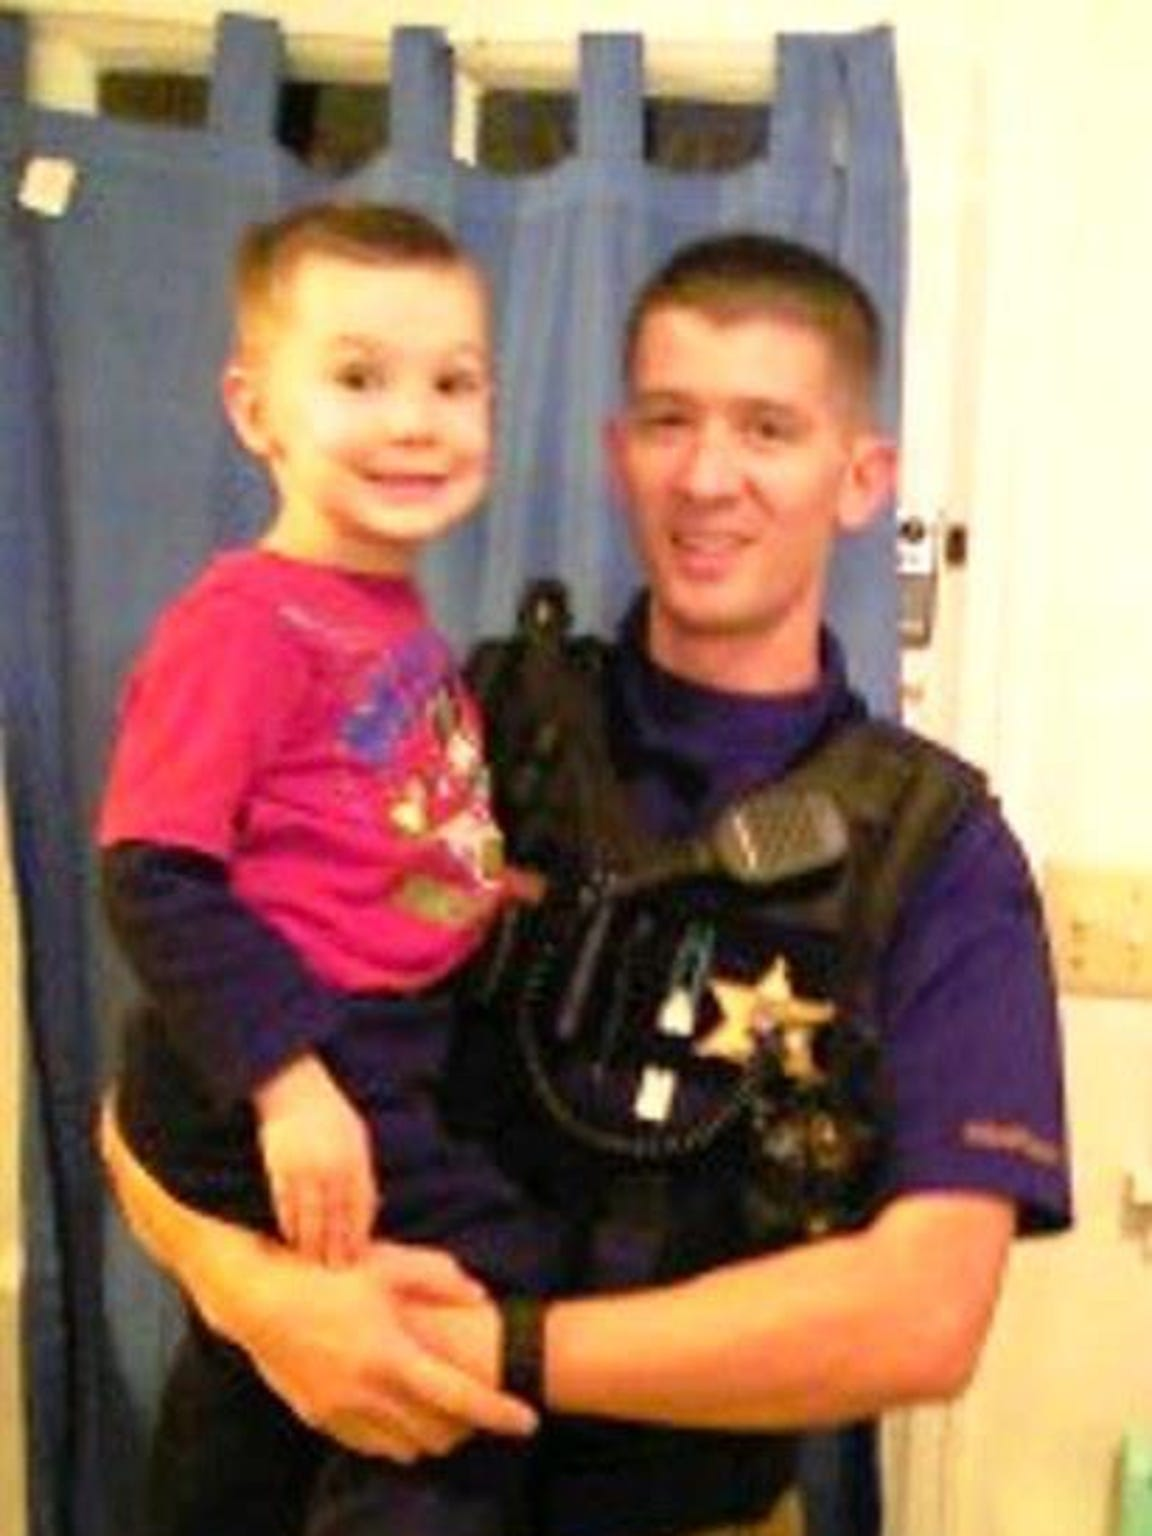 Cascade County Sheriff's Deputy Joseph Dunn with his